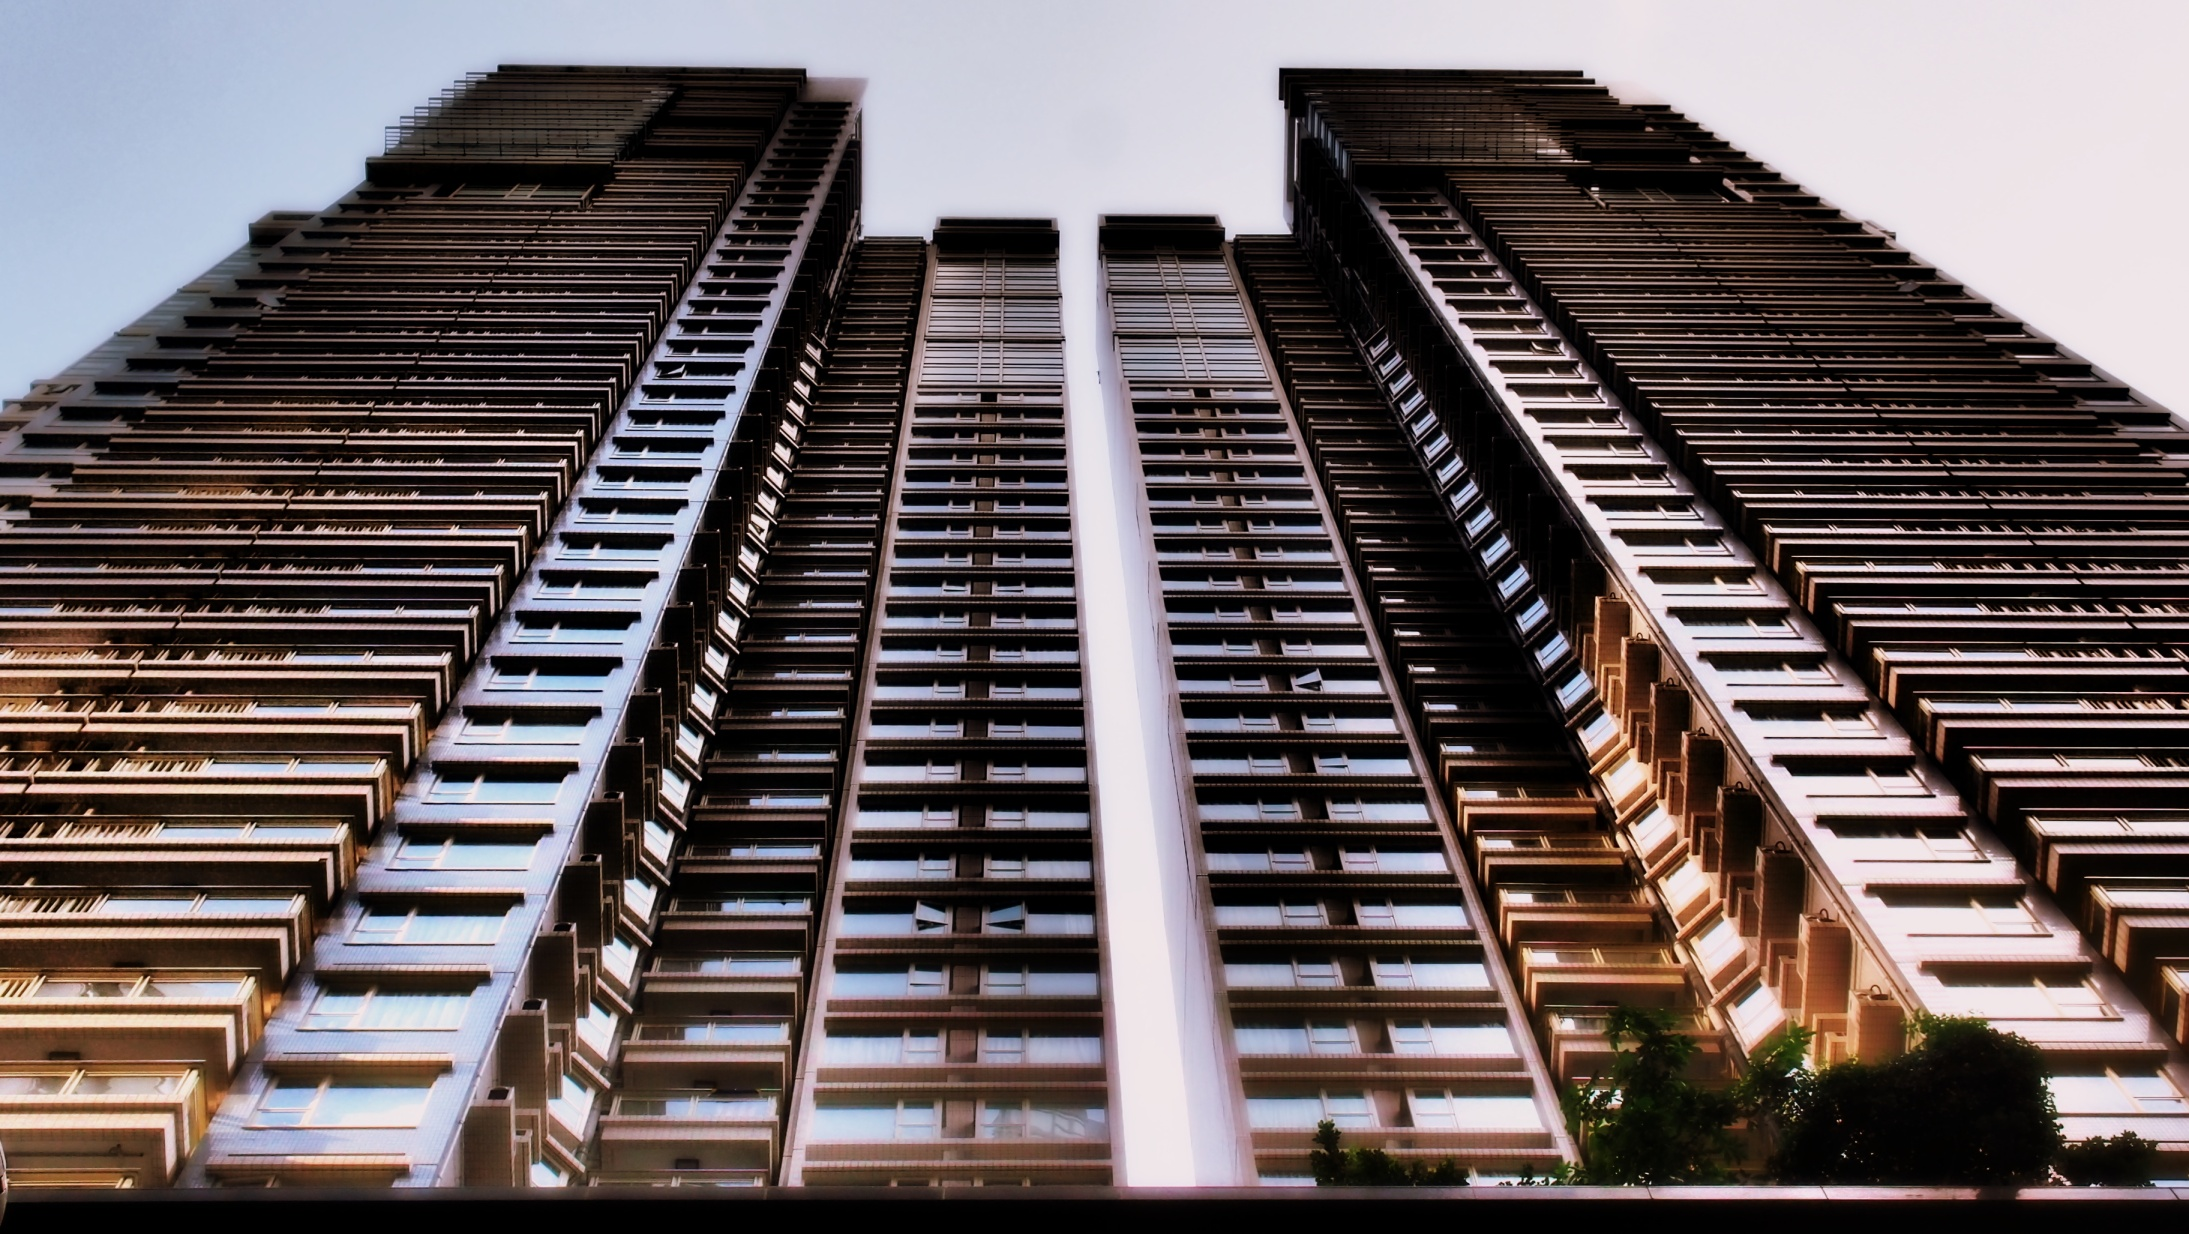 The Centre Stage apartment complex on Hollywood Road on the Island